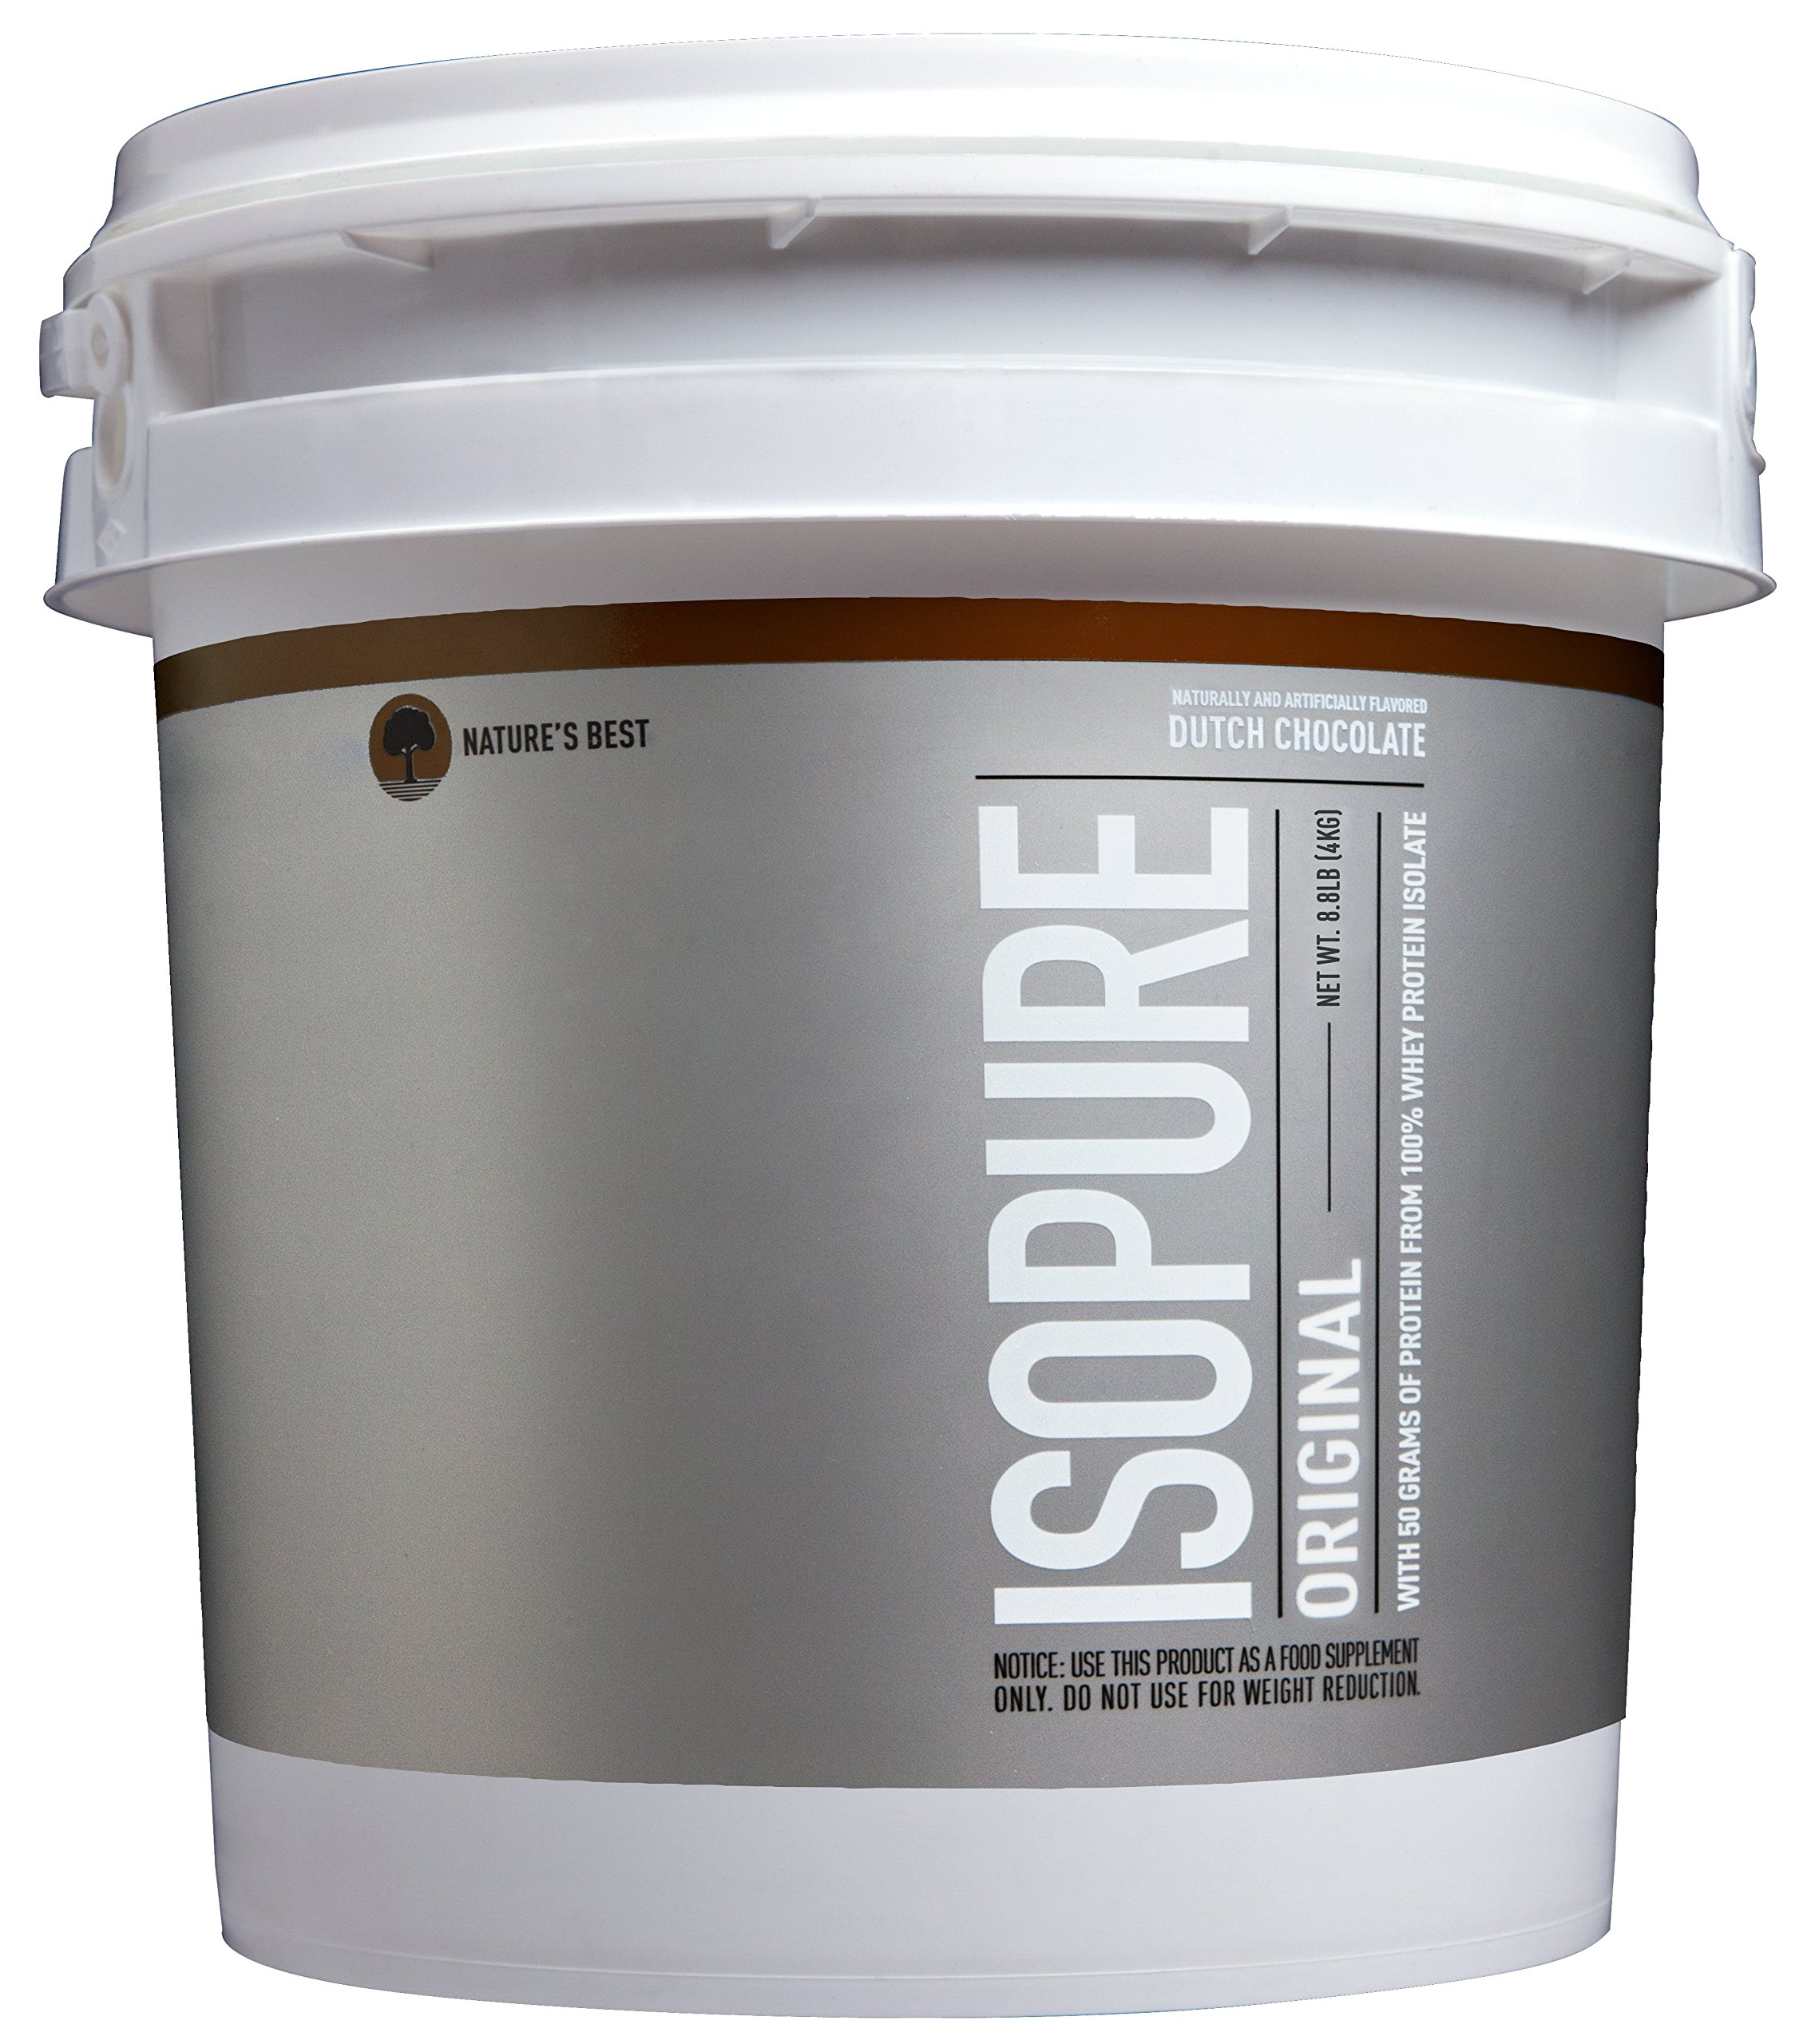 Isopure Original Protein Powder, 100% Whey Protein Isolate, Flavor: Dutch Chocolate, 8.8 Pounds (Packaging May Vary)